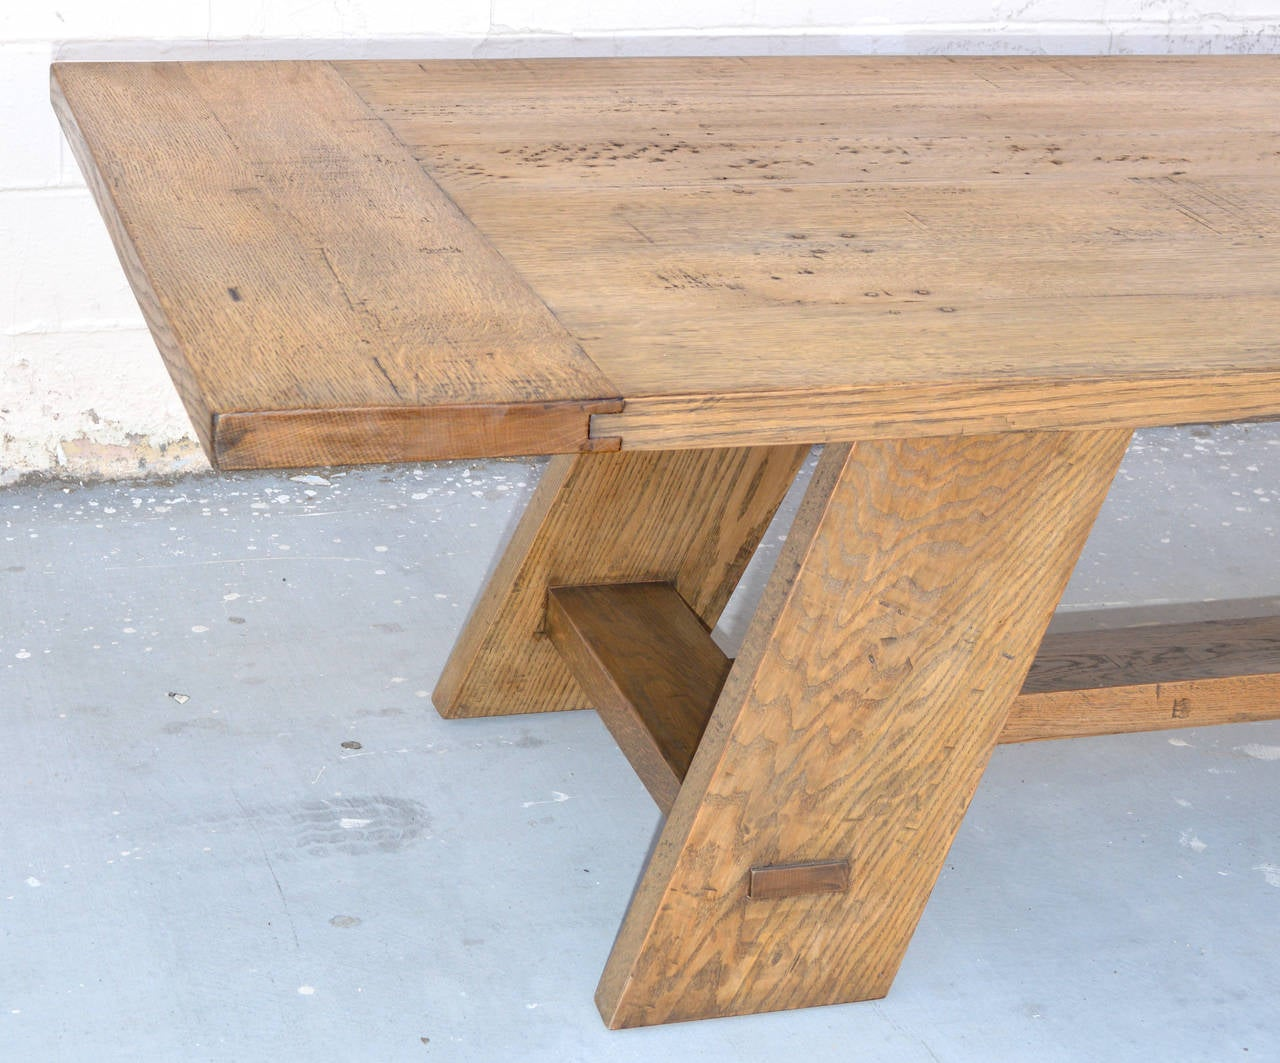 Lacquered Custom Banquet Table in Vintage White Oak, Made to Order by Petersen Antiques For Sale